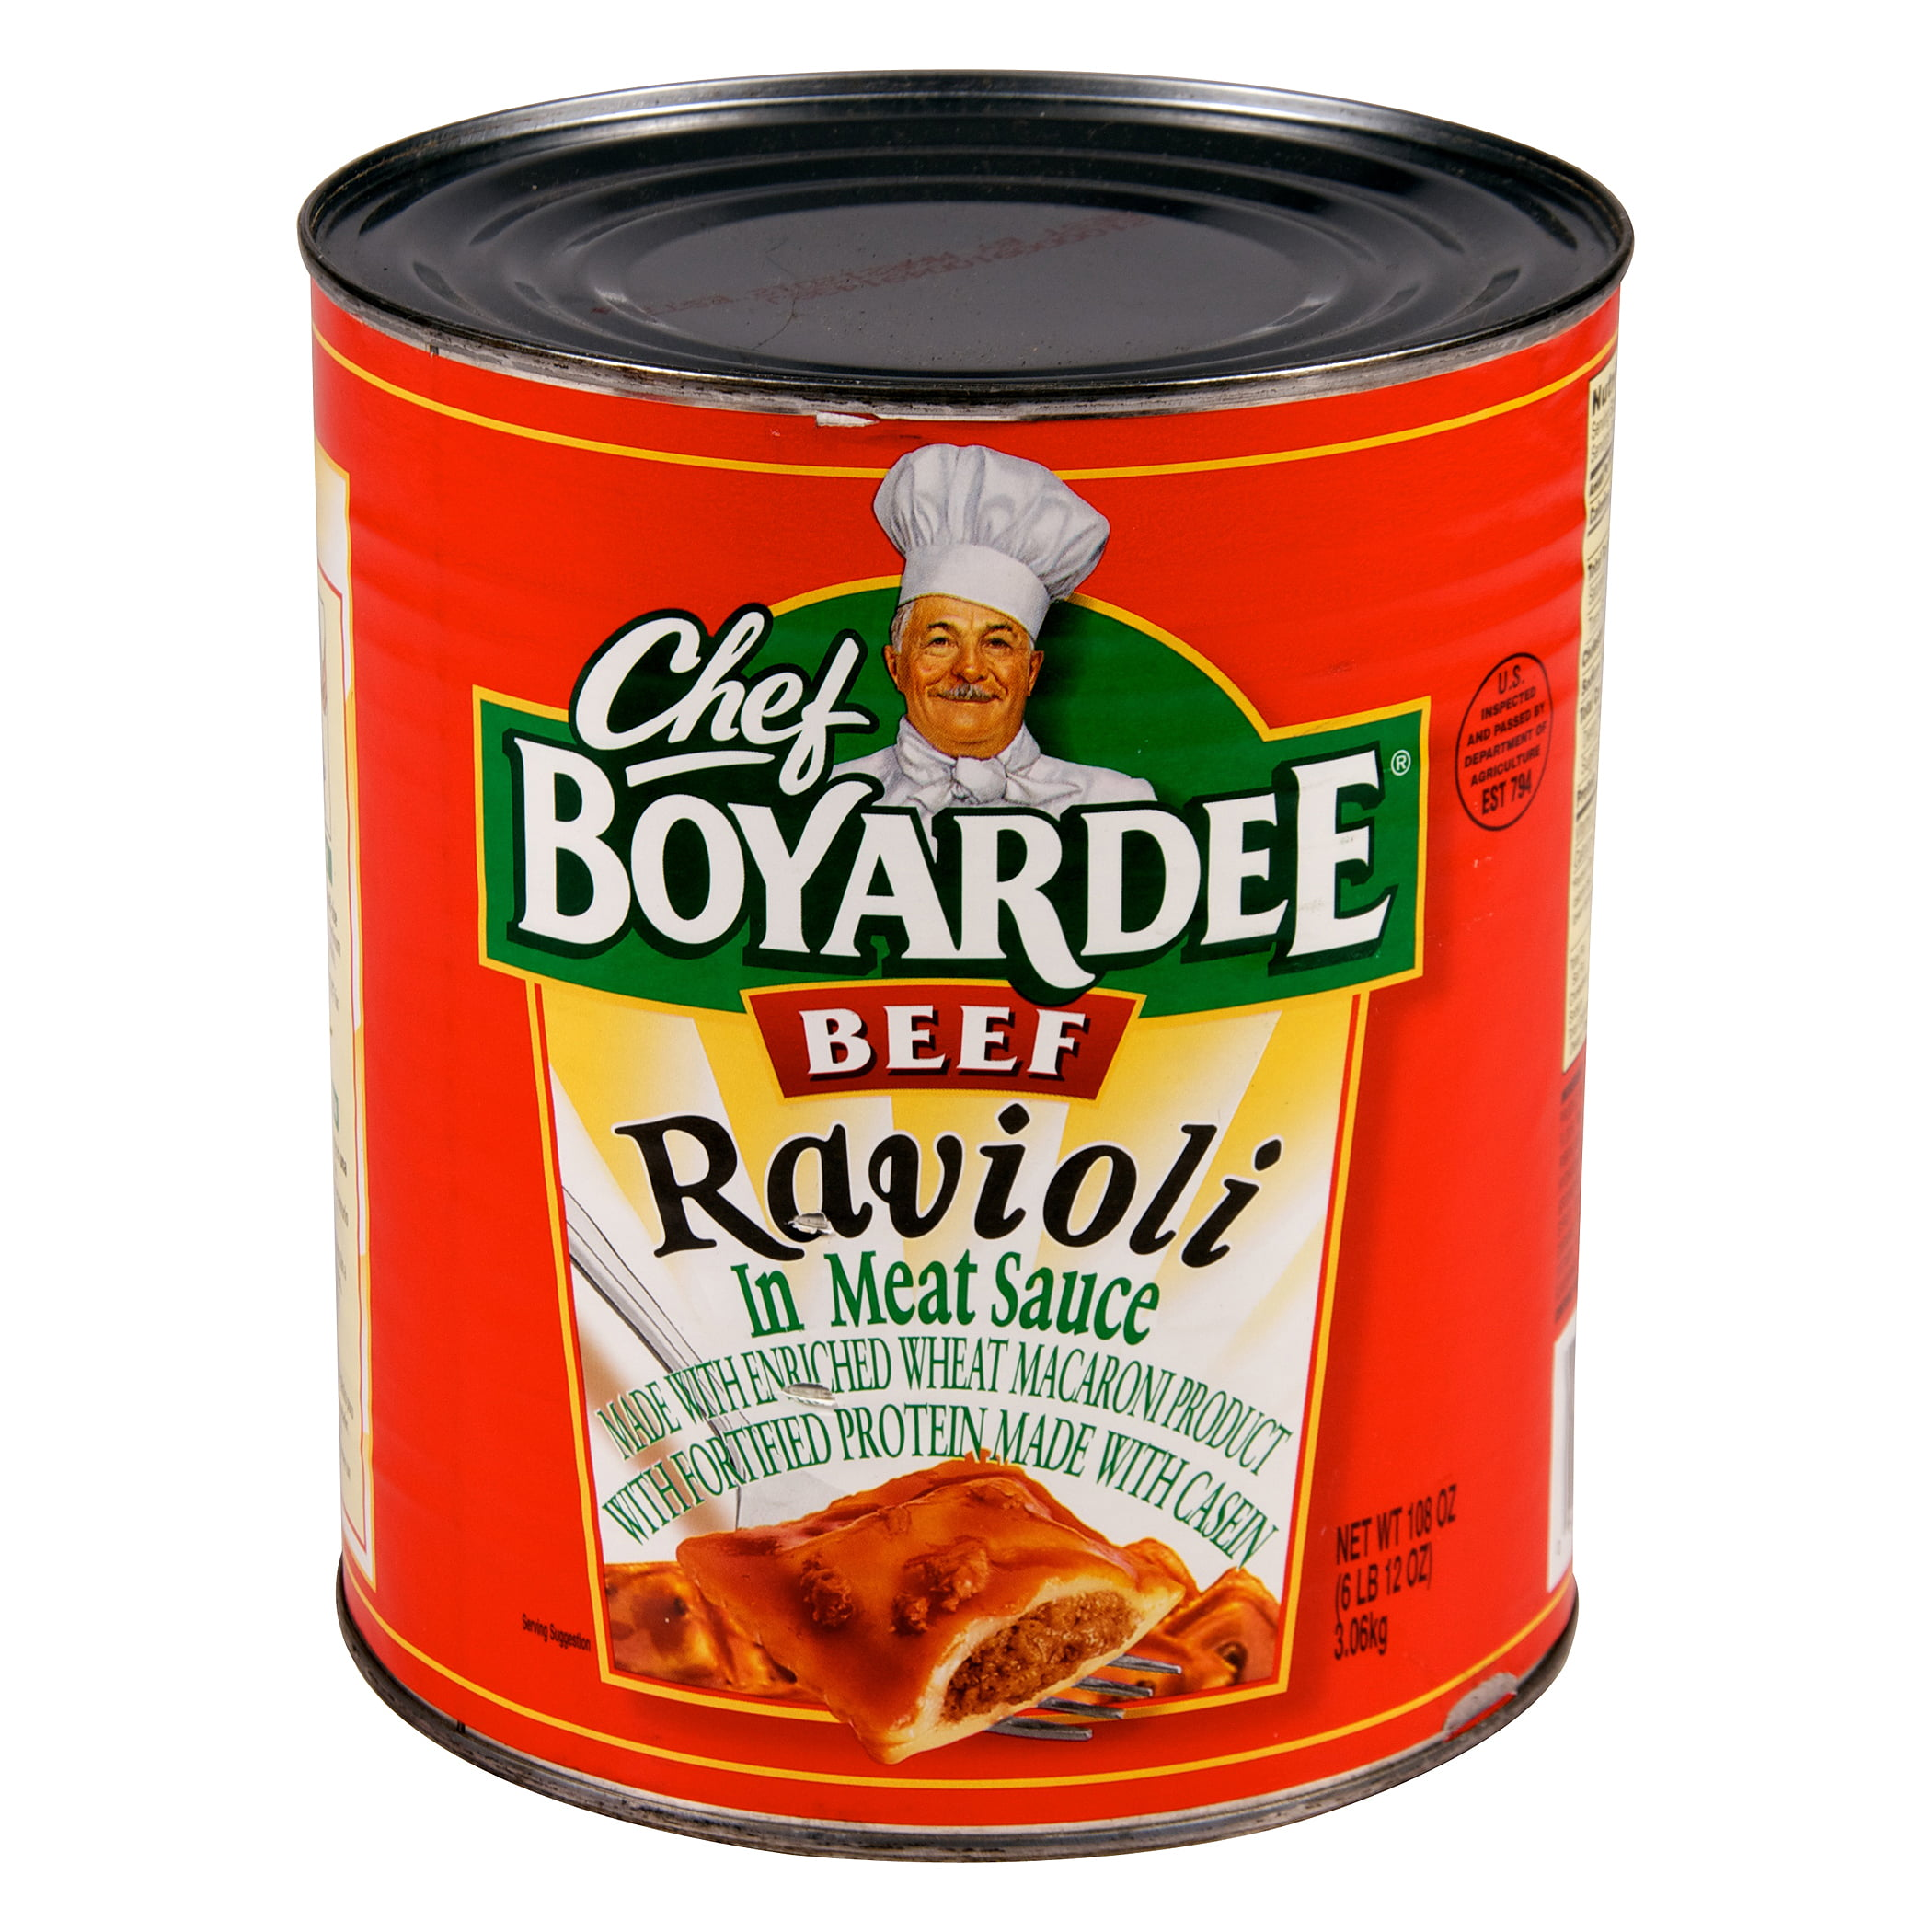 Chef Boyardee In Tomato & Meat Sauce Beef Ravioli, 108 oz by ConAgra Foods Inc.